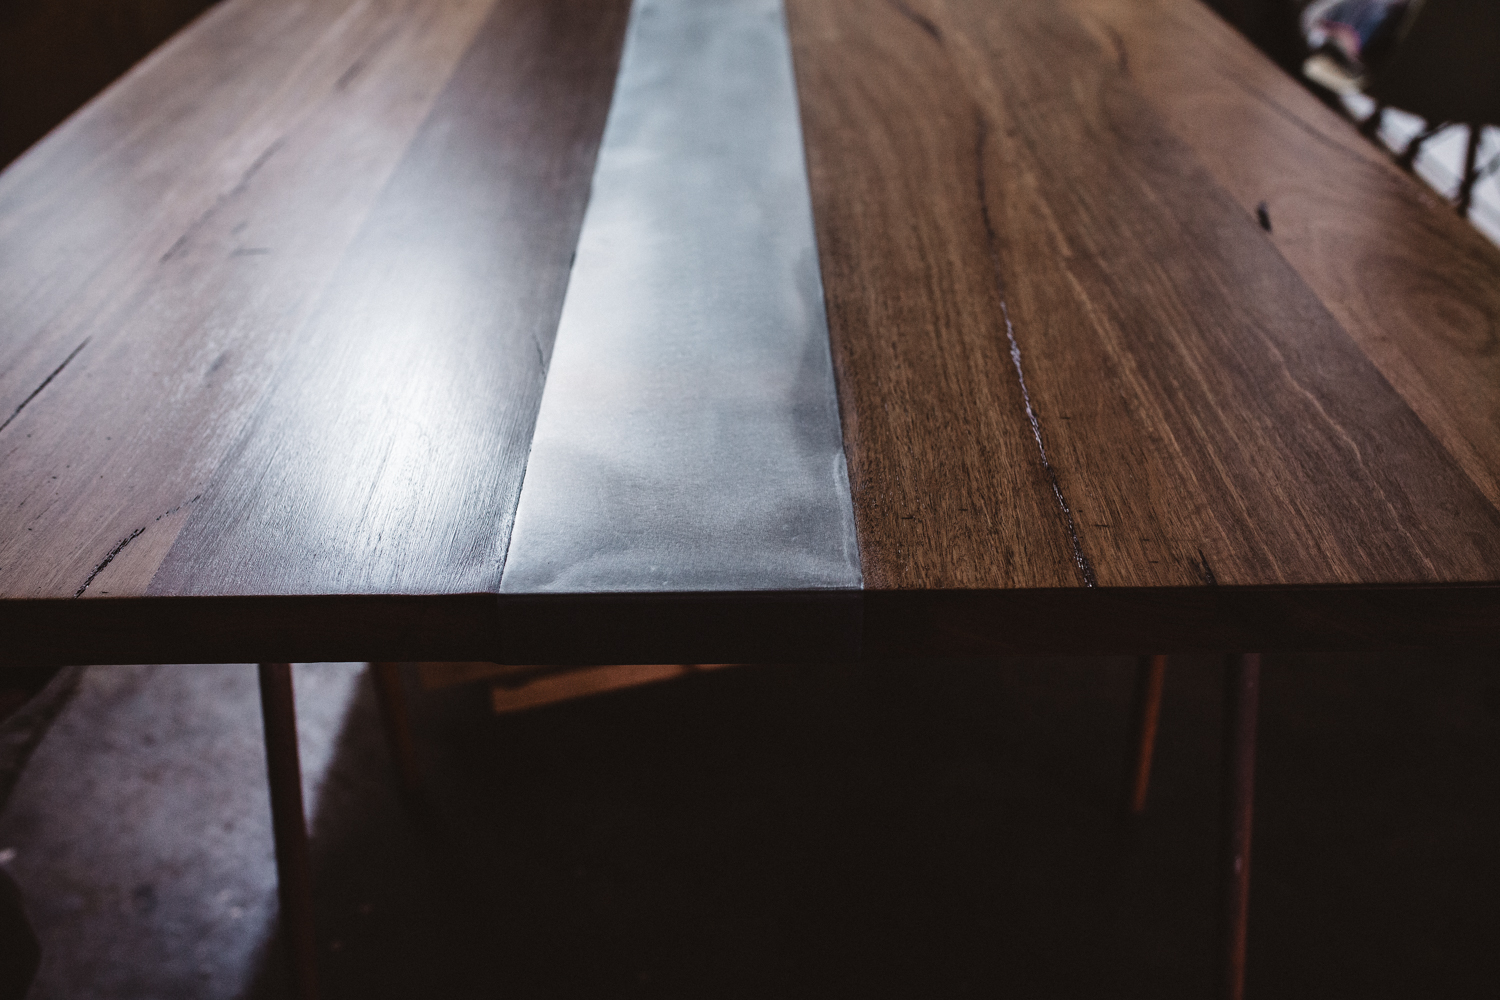 zinc strip in timbermill custom dining table in recycled hardwood.